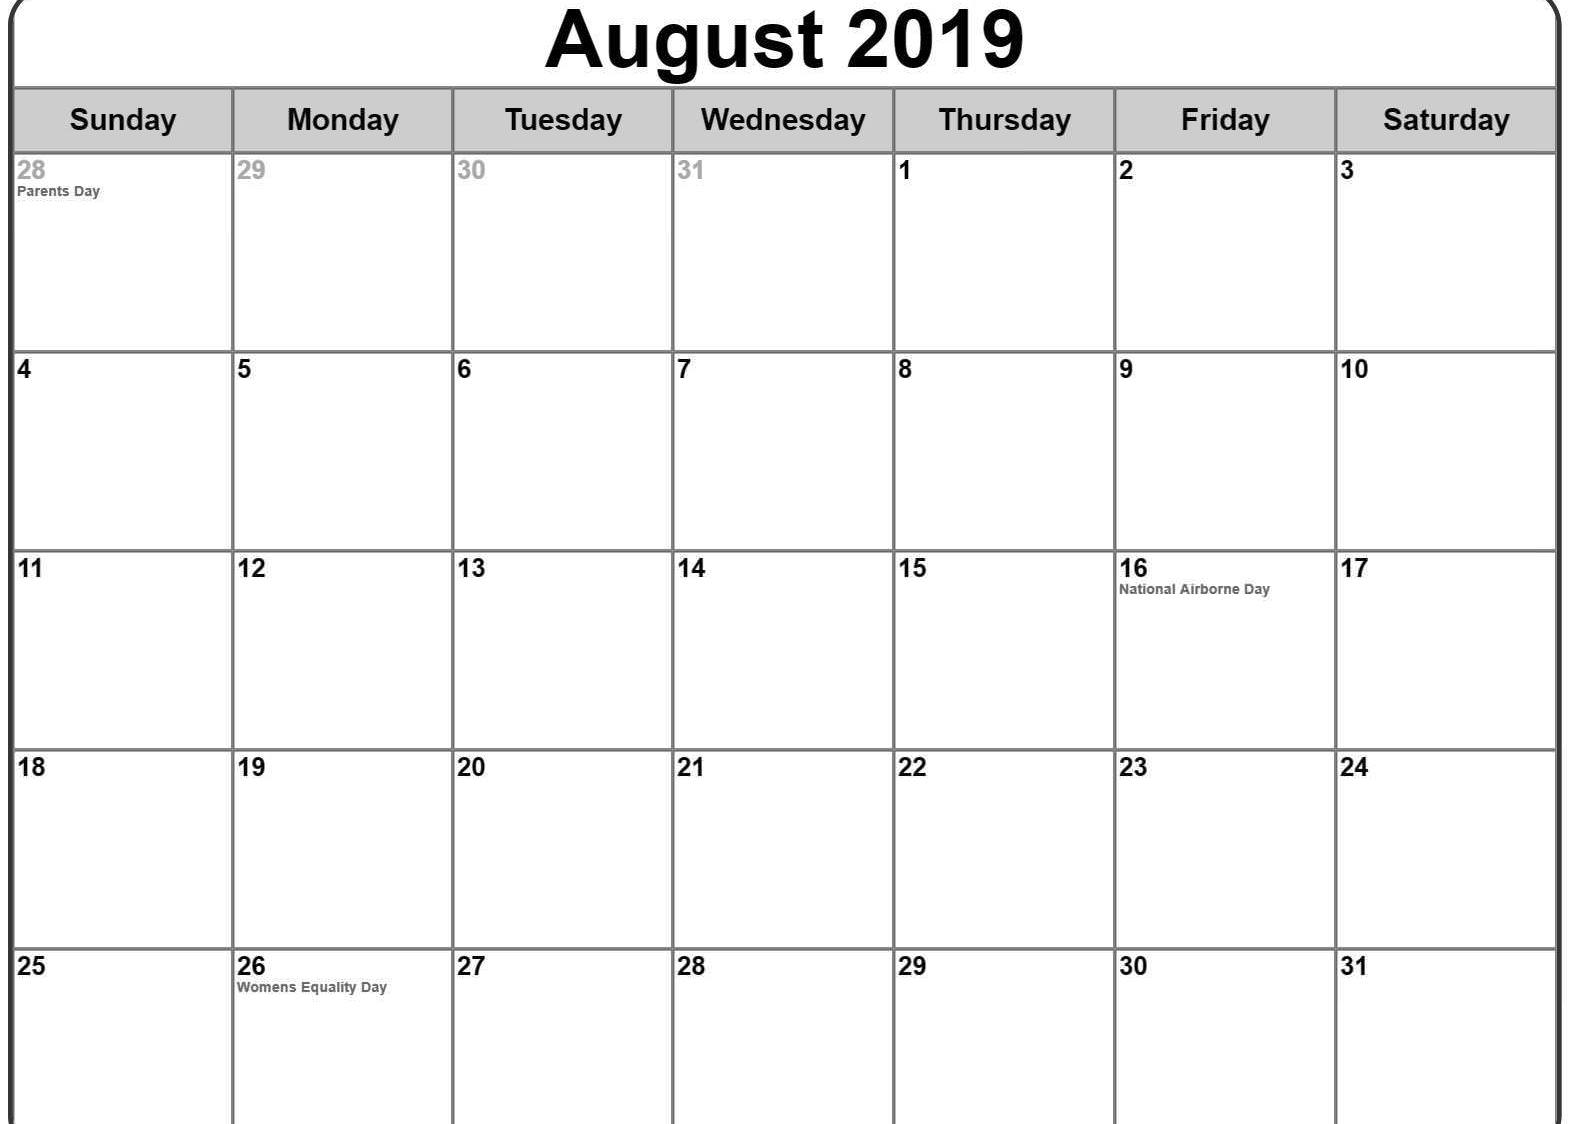 August 2019 Calendar US Holidays